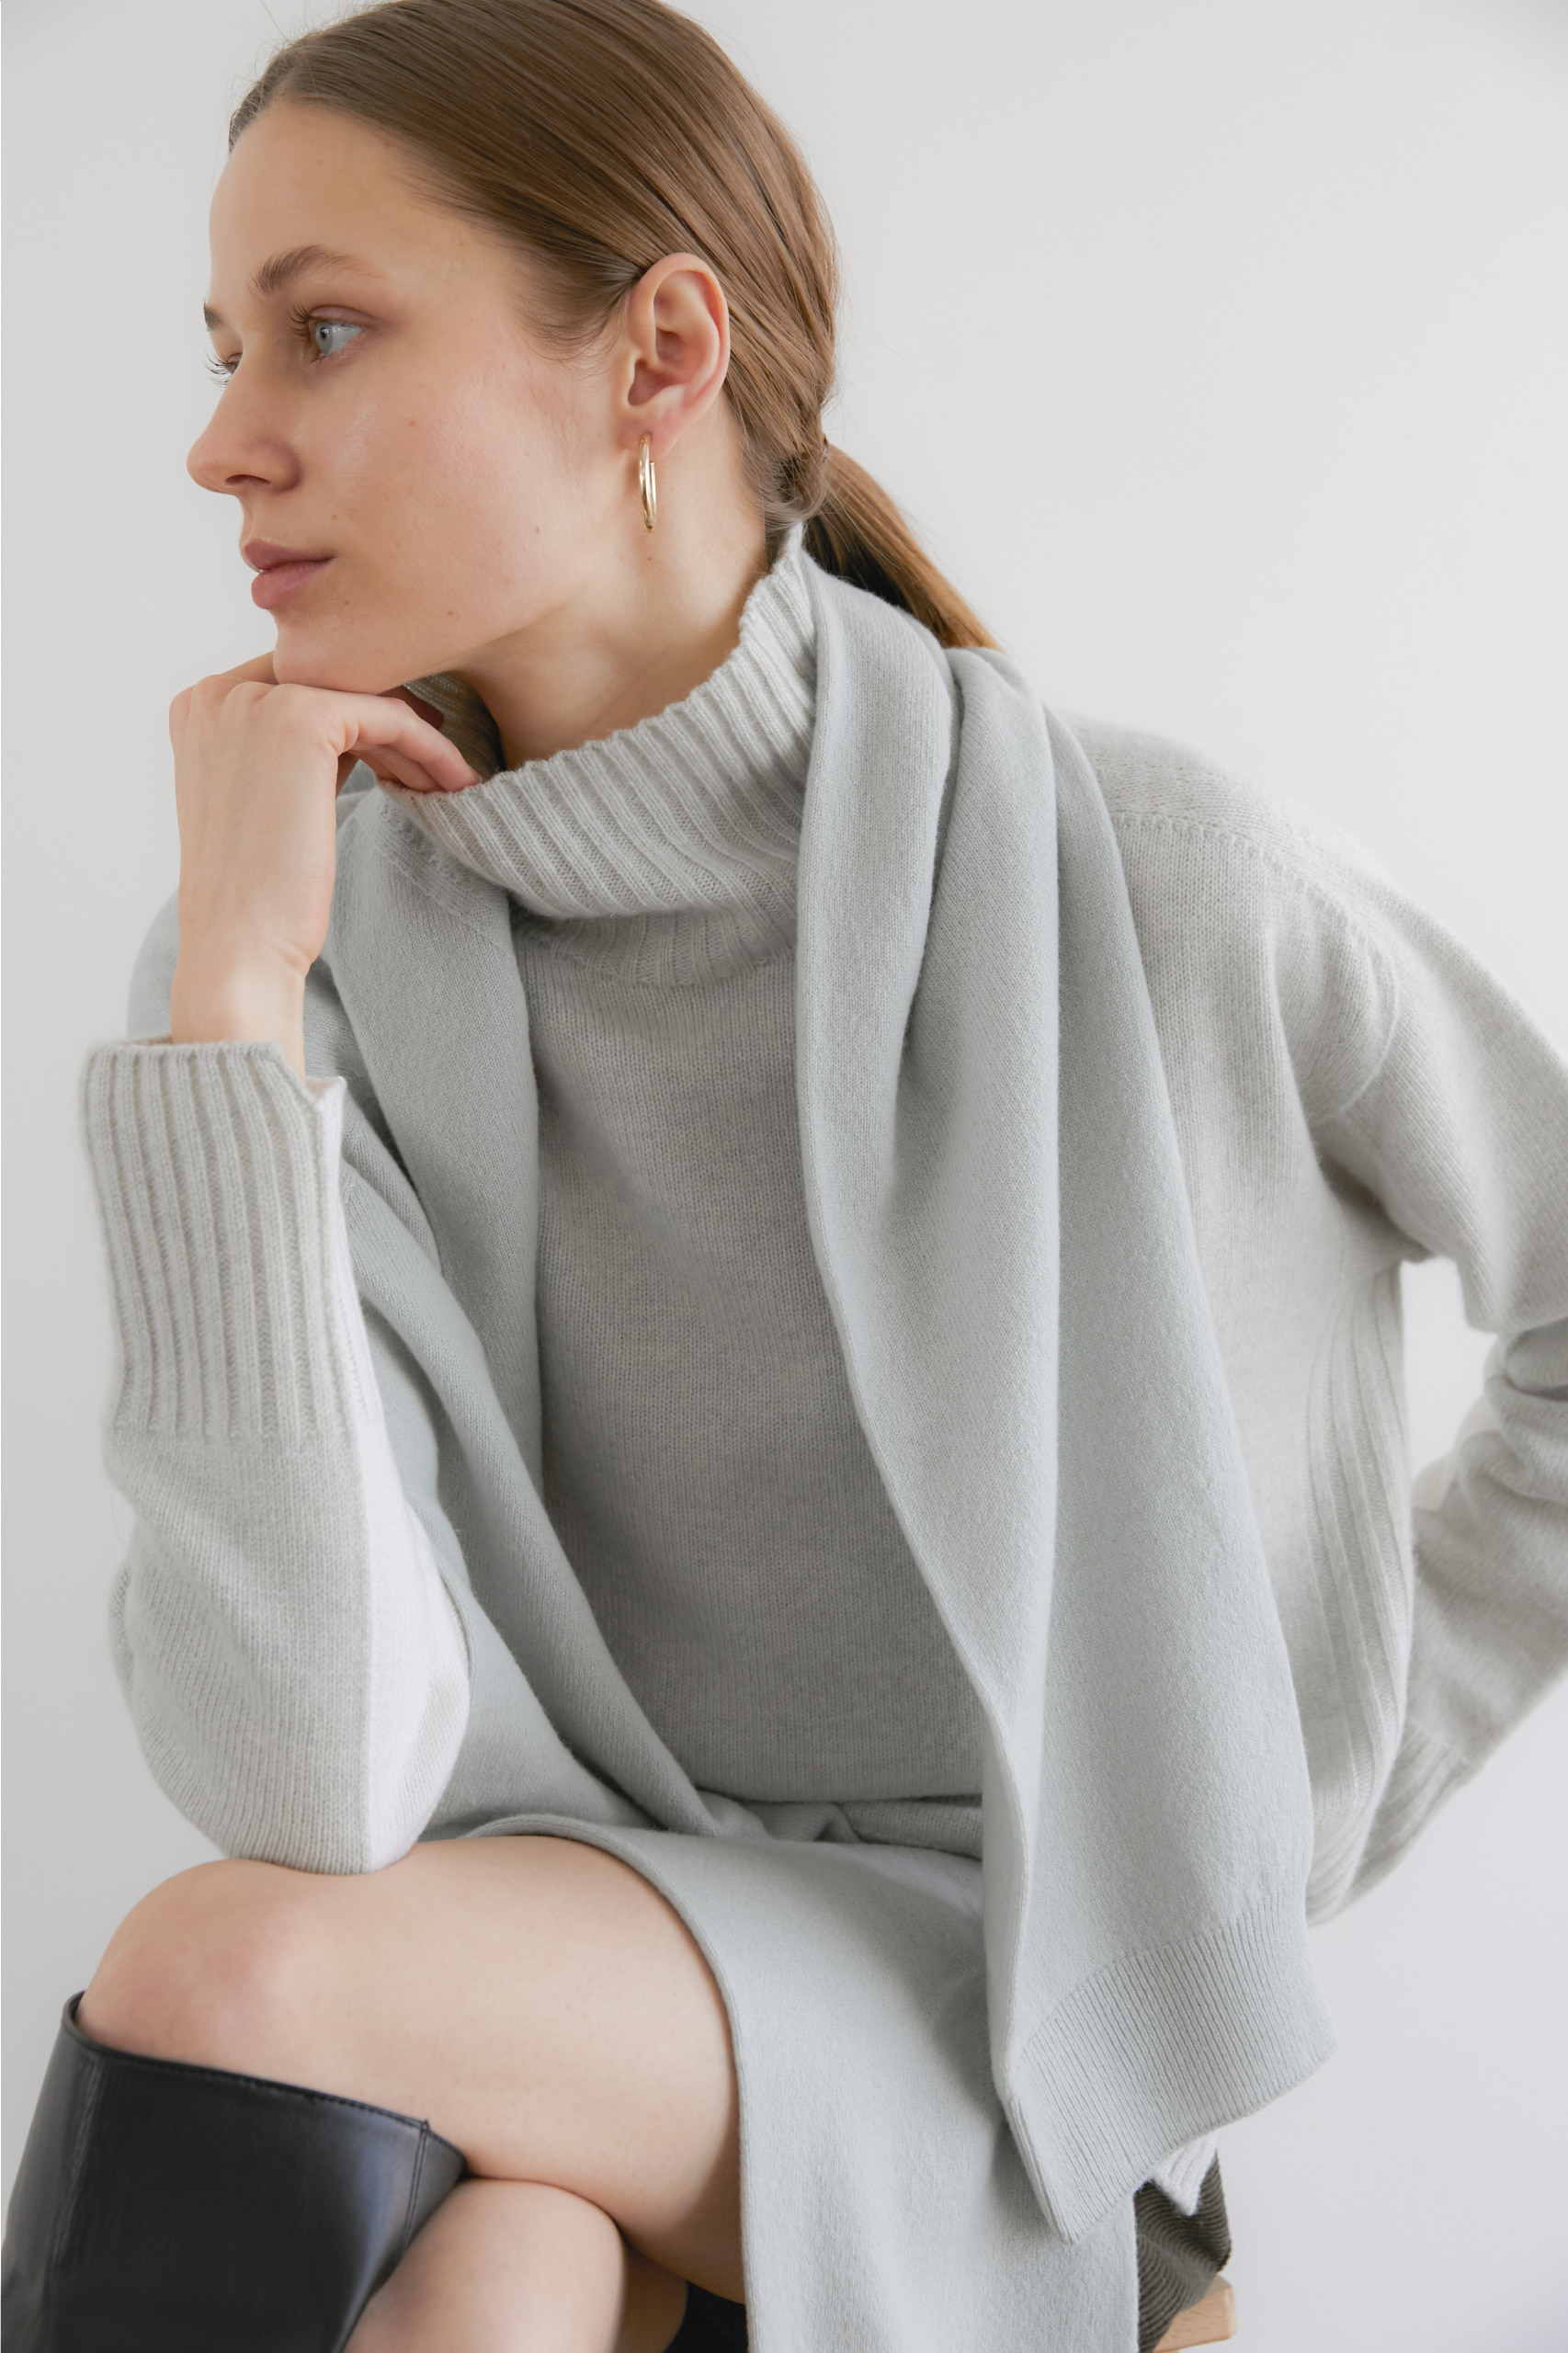 [NAMED collection - 로로피아나] 프리미엄 퓨어 캐시미어100 홀가먼트 컬러블럭 풀오버 [Pure cashmere100 whole-garment knitting turtleneck pullover - Mint melange white]